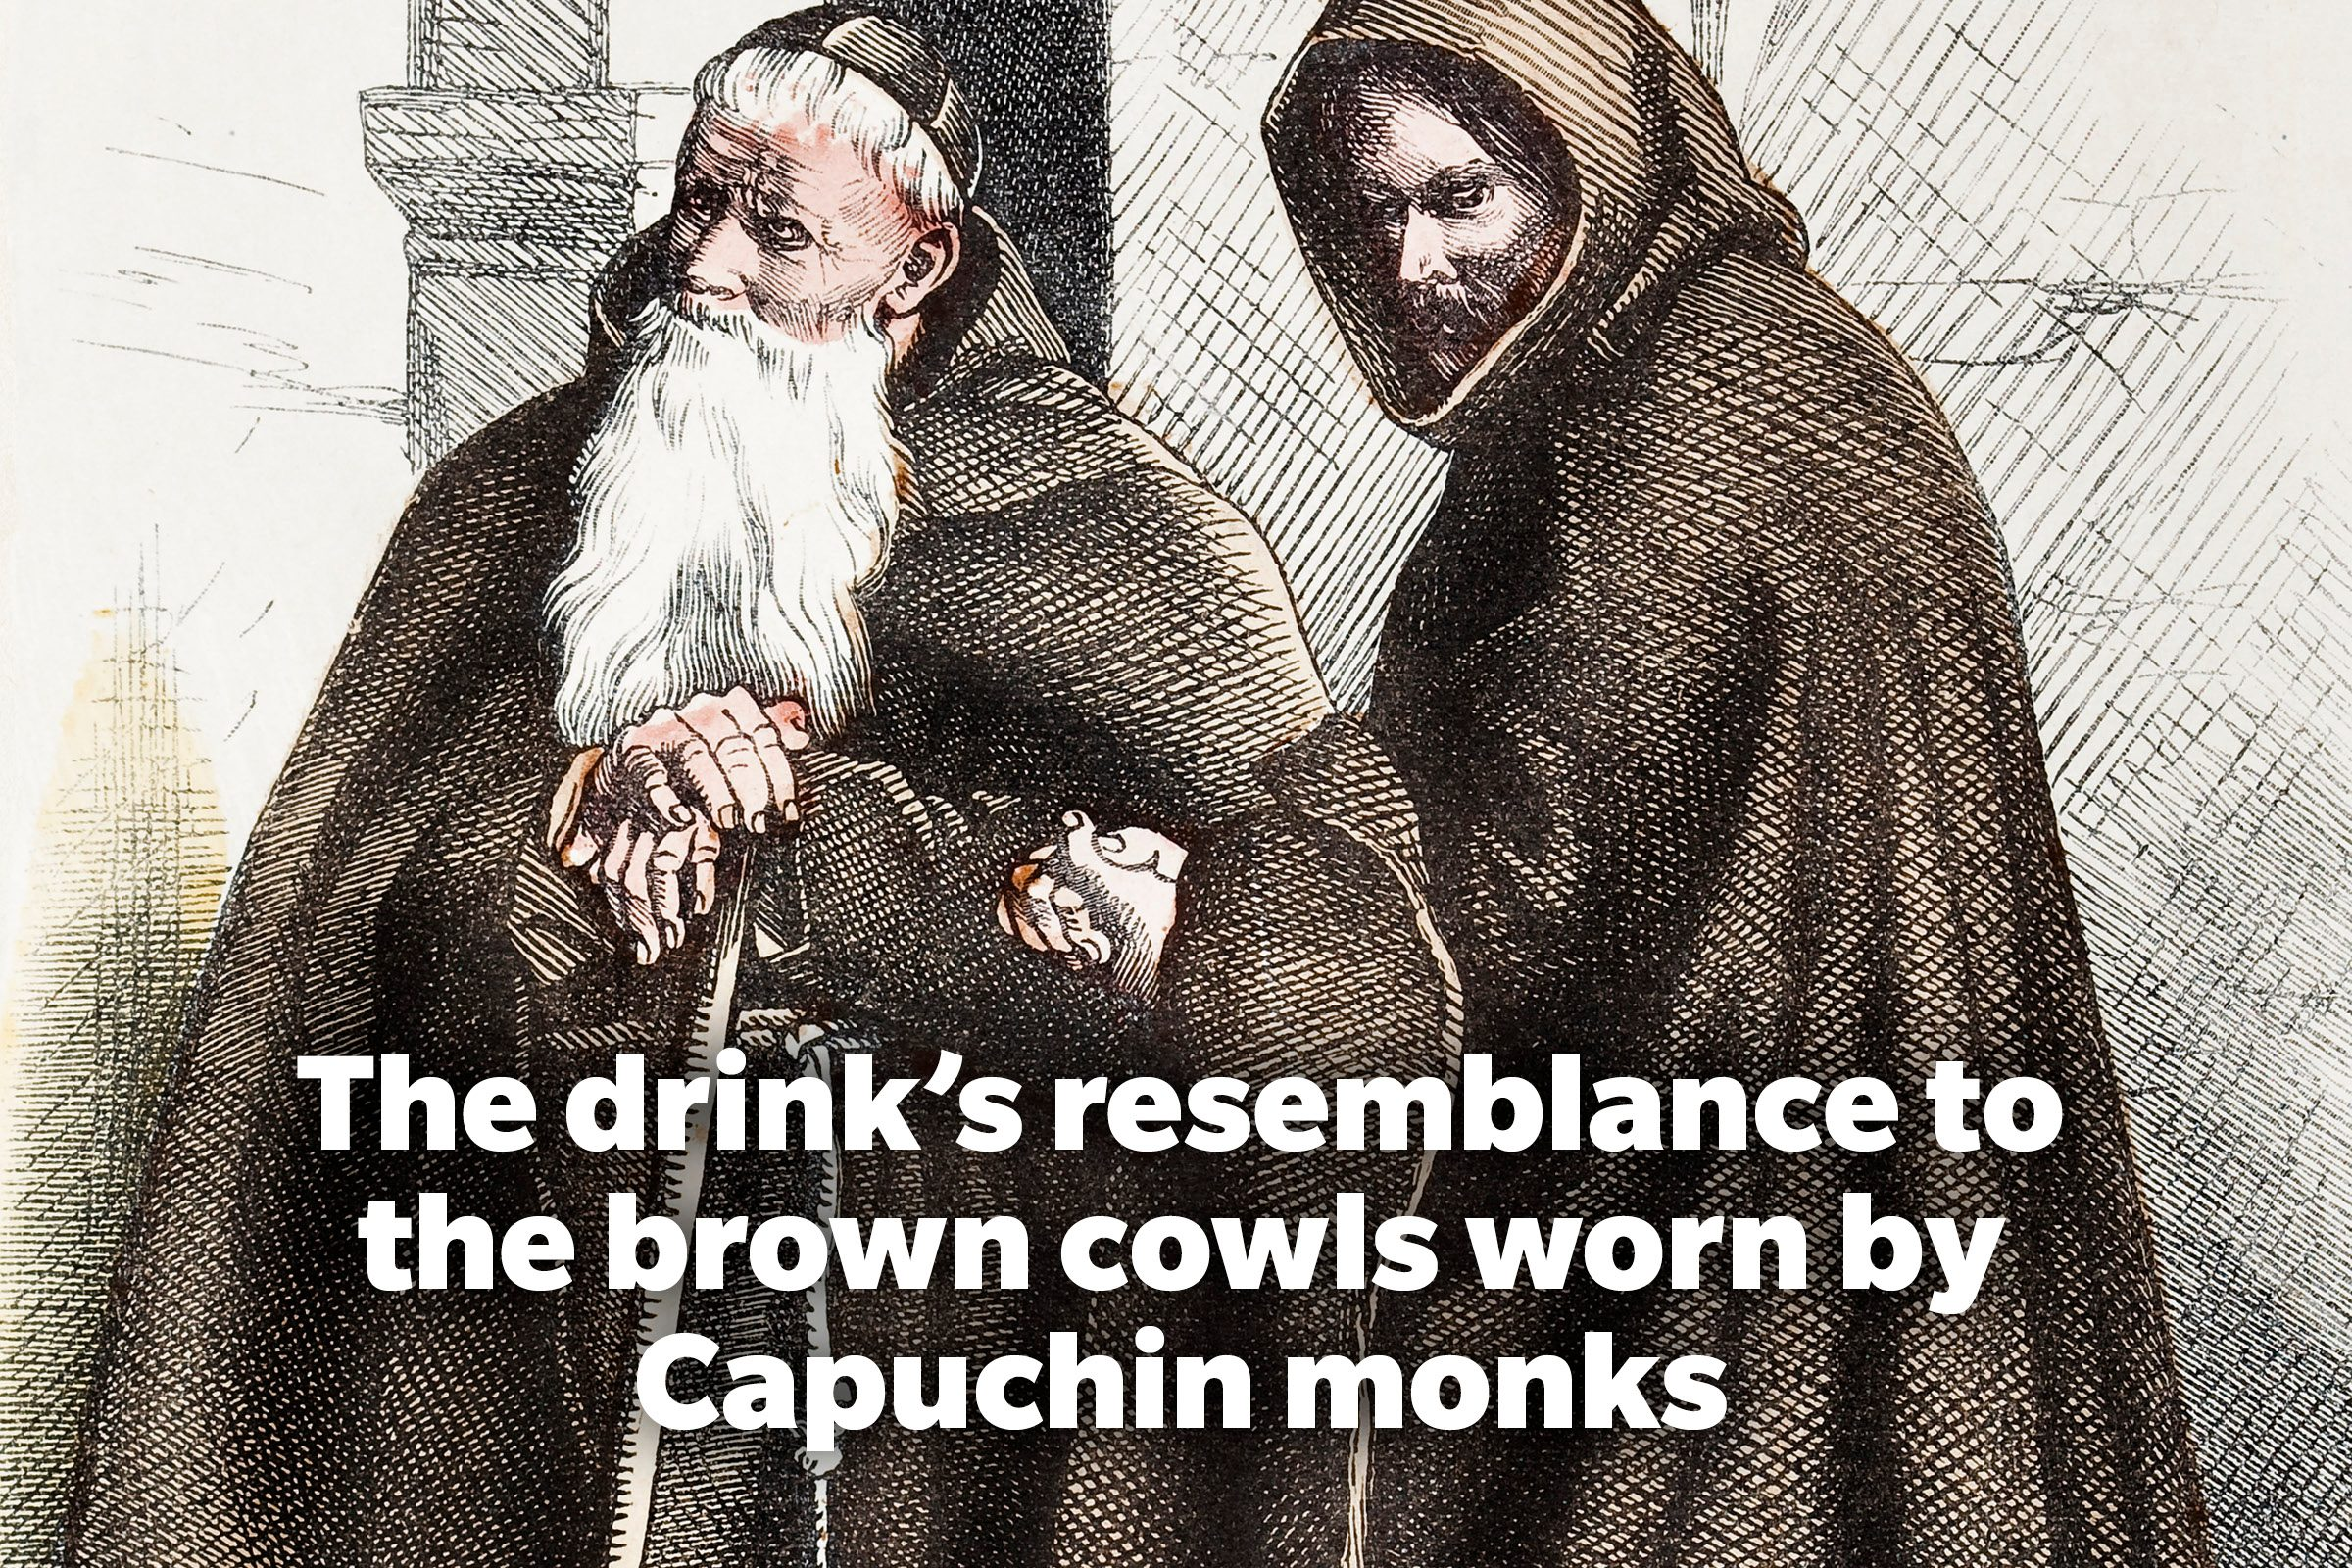 The drink's resemblance to the brown cowls worn by Capuchin monks